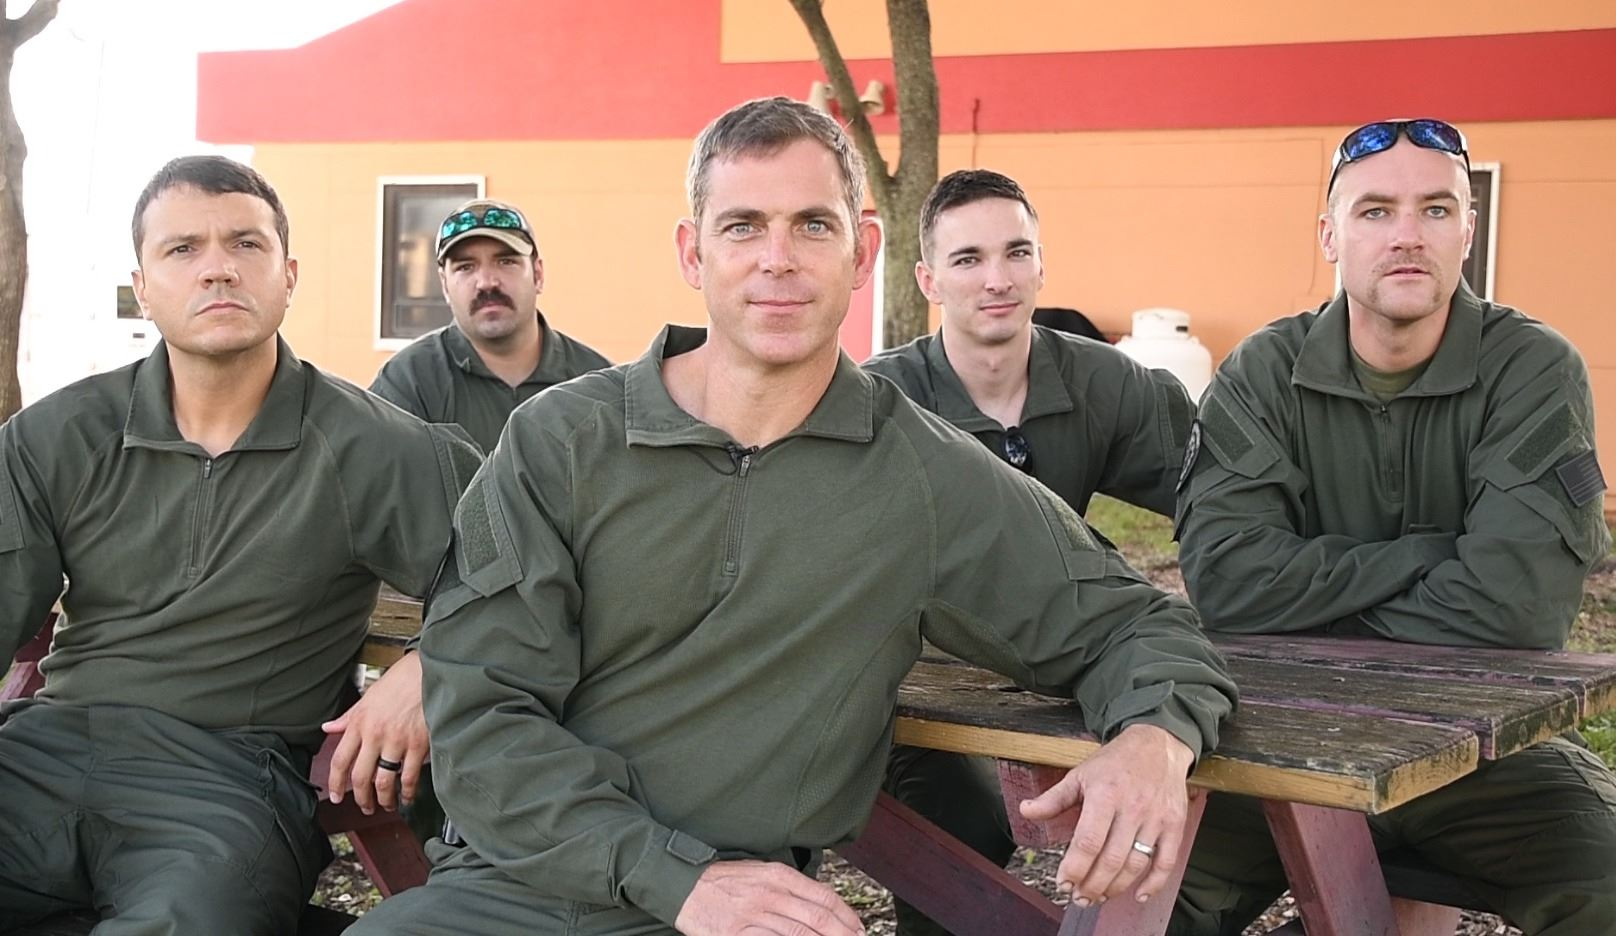 Five members of the tactical medical team group photo